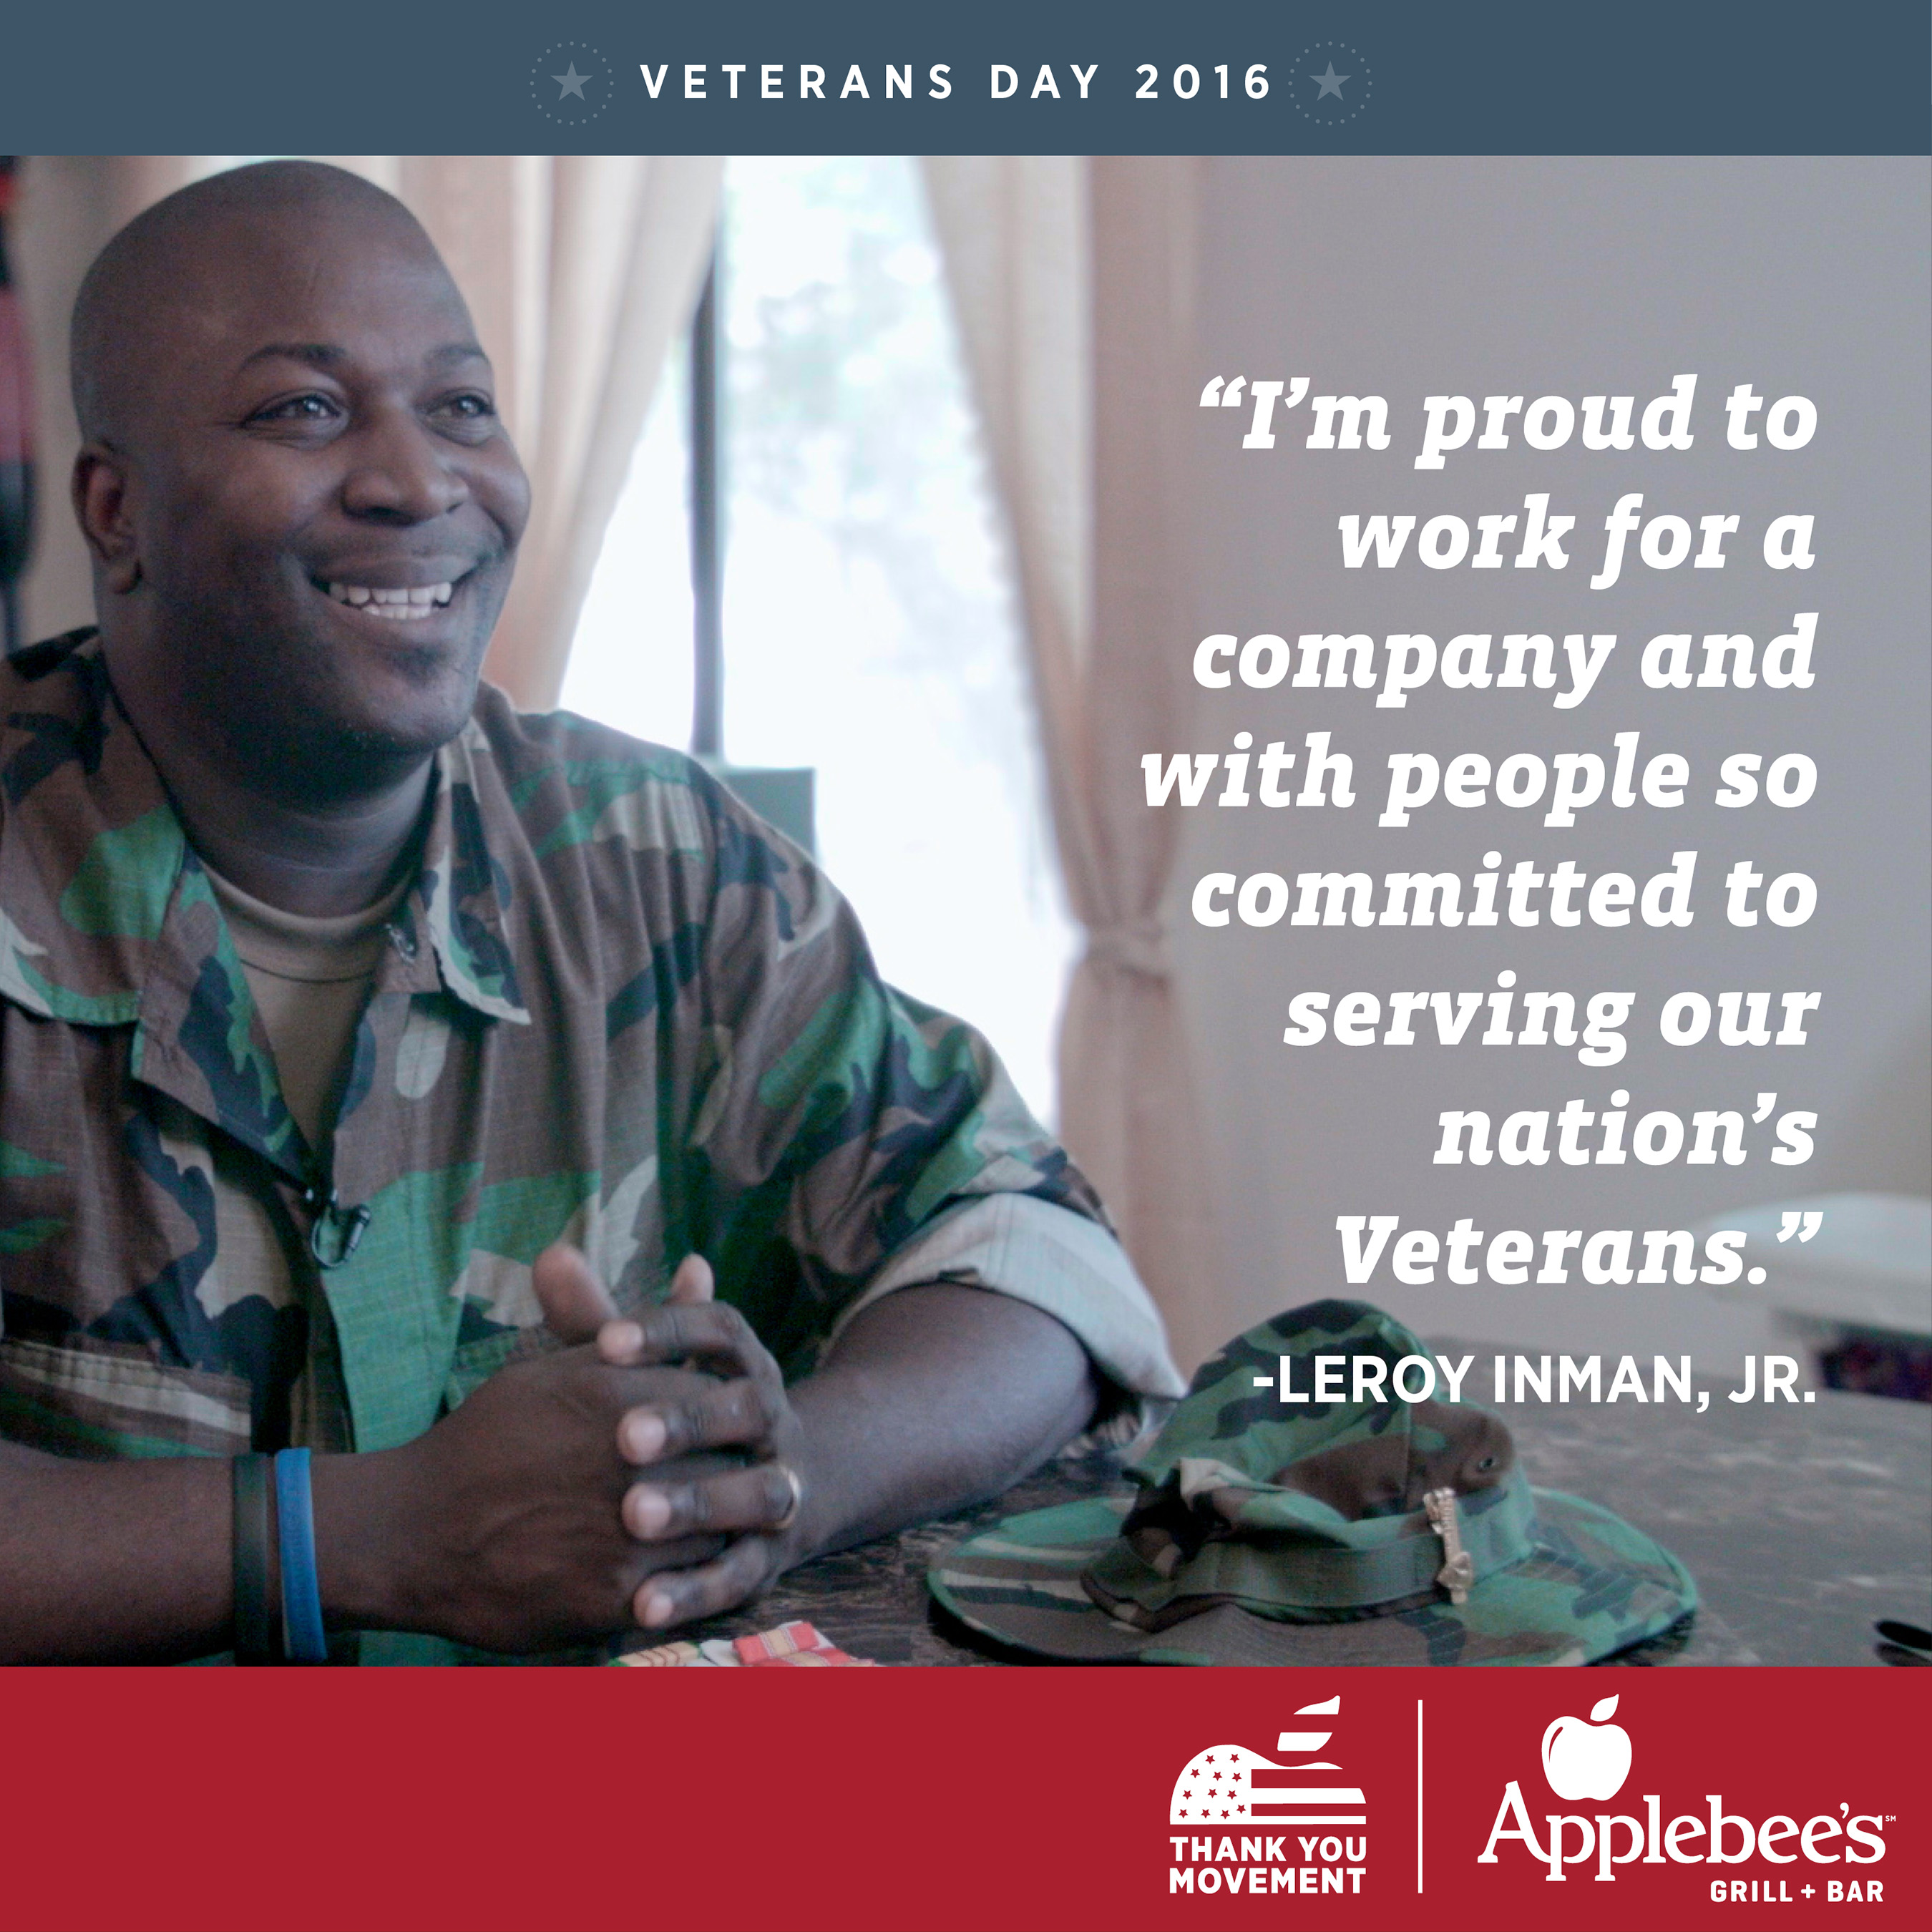 Leroy Inman, Jr., Applebee's employee and veteran, shares why he's proud to serve his country.